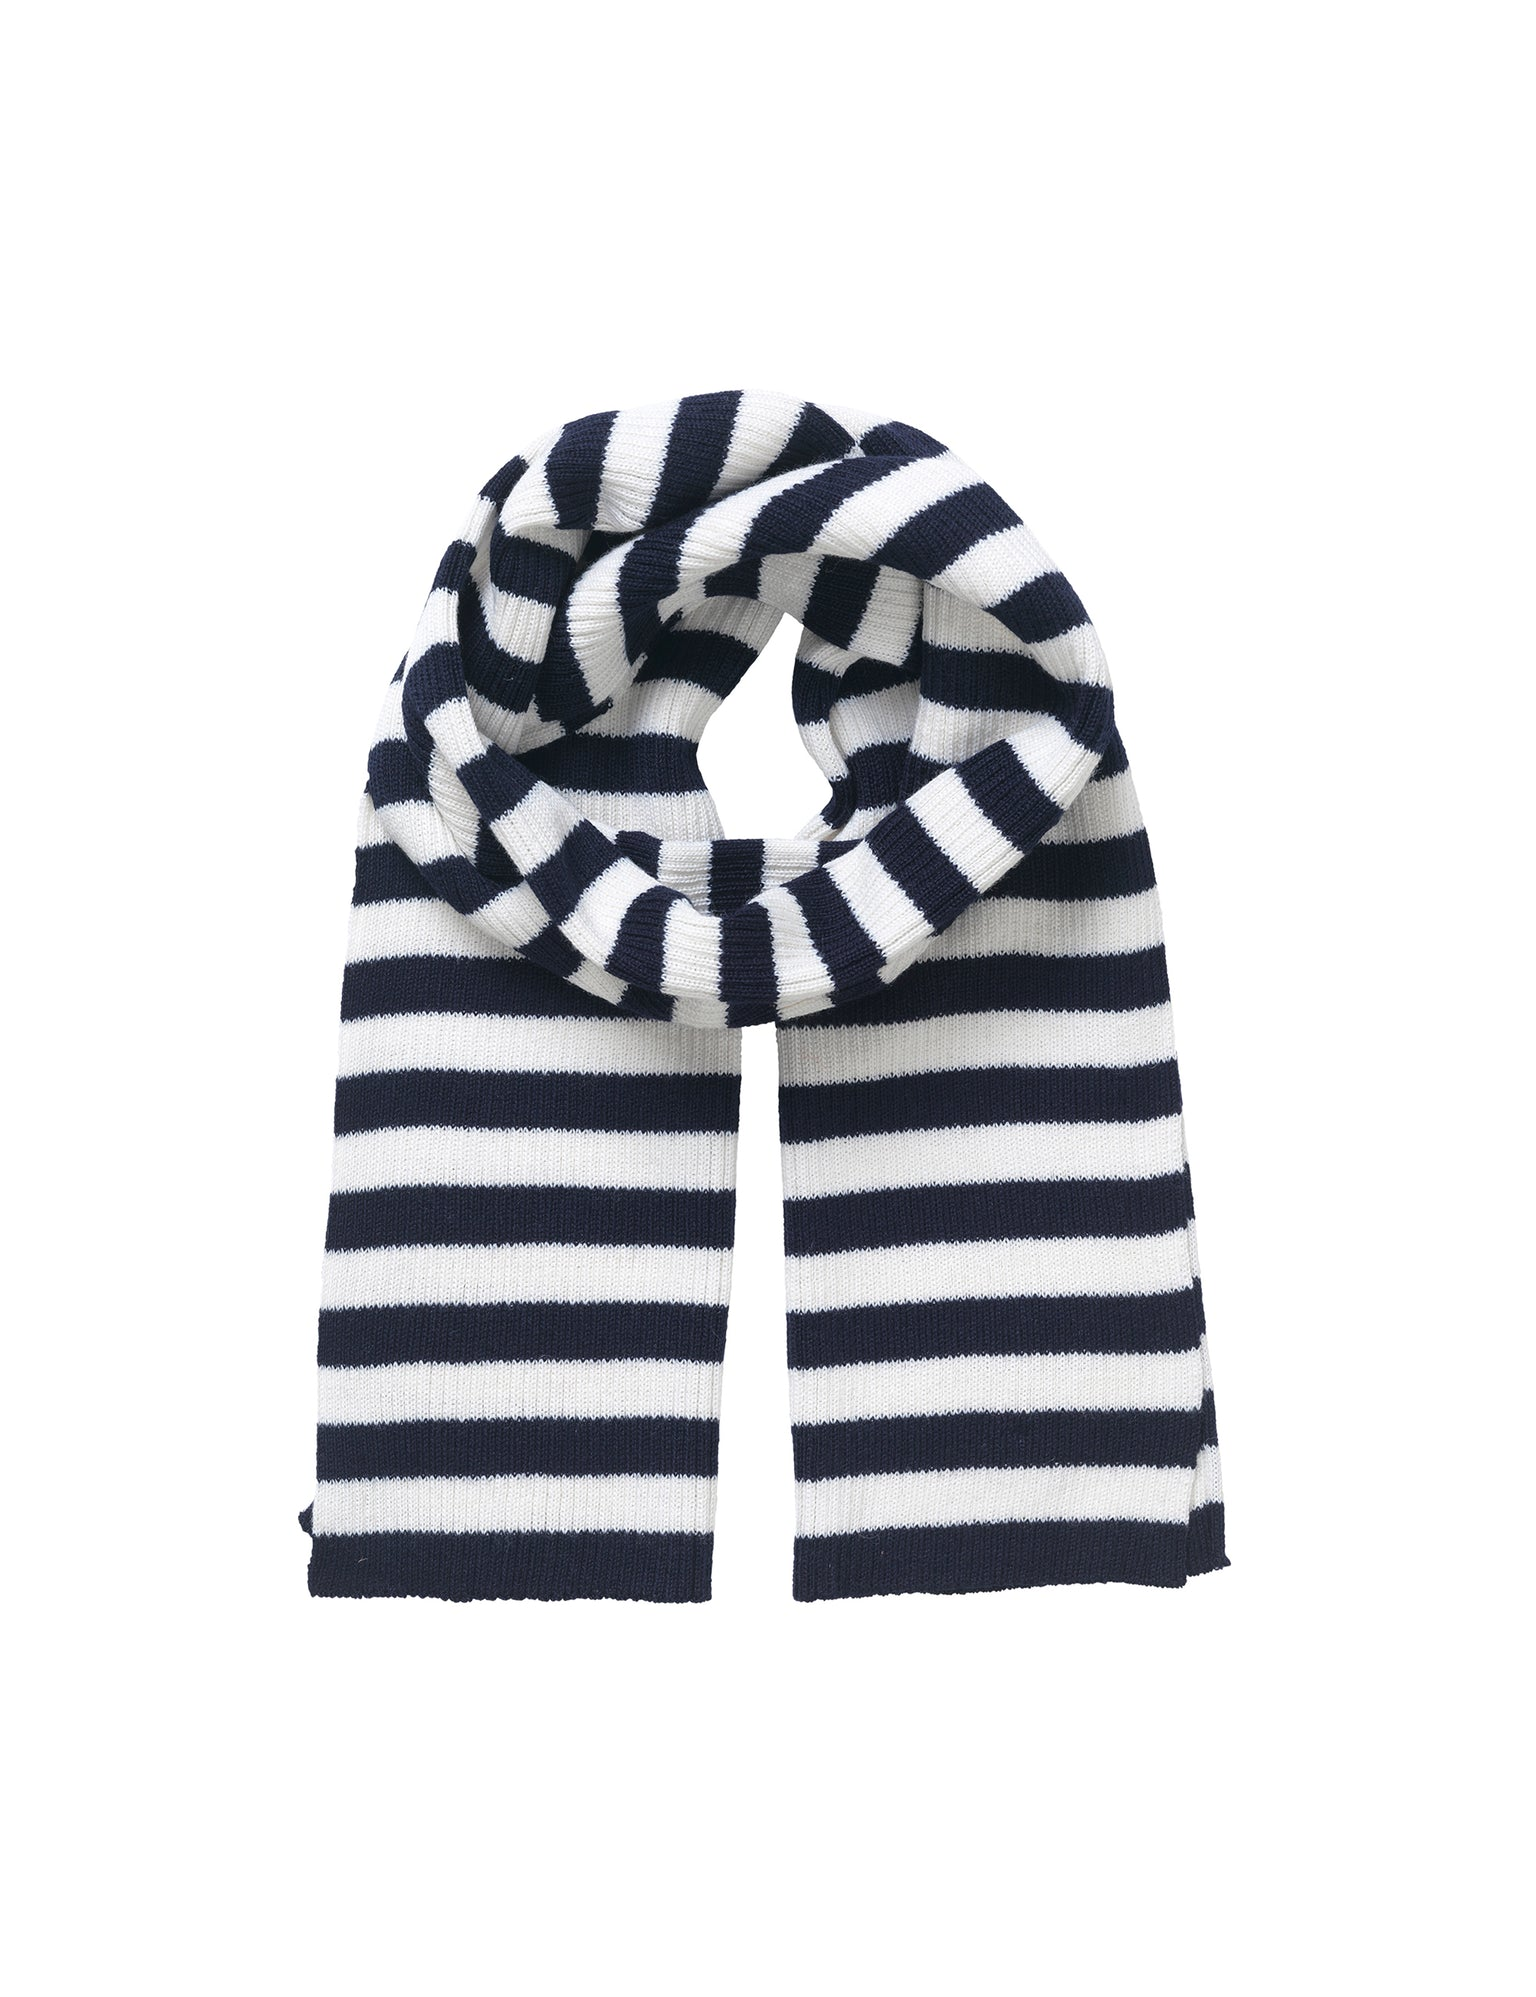 Wool Tender Stormino, Navy/Ecru